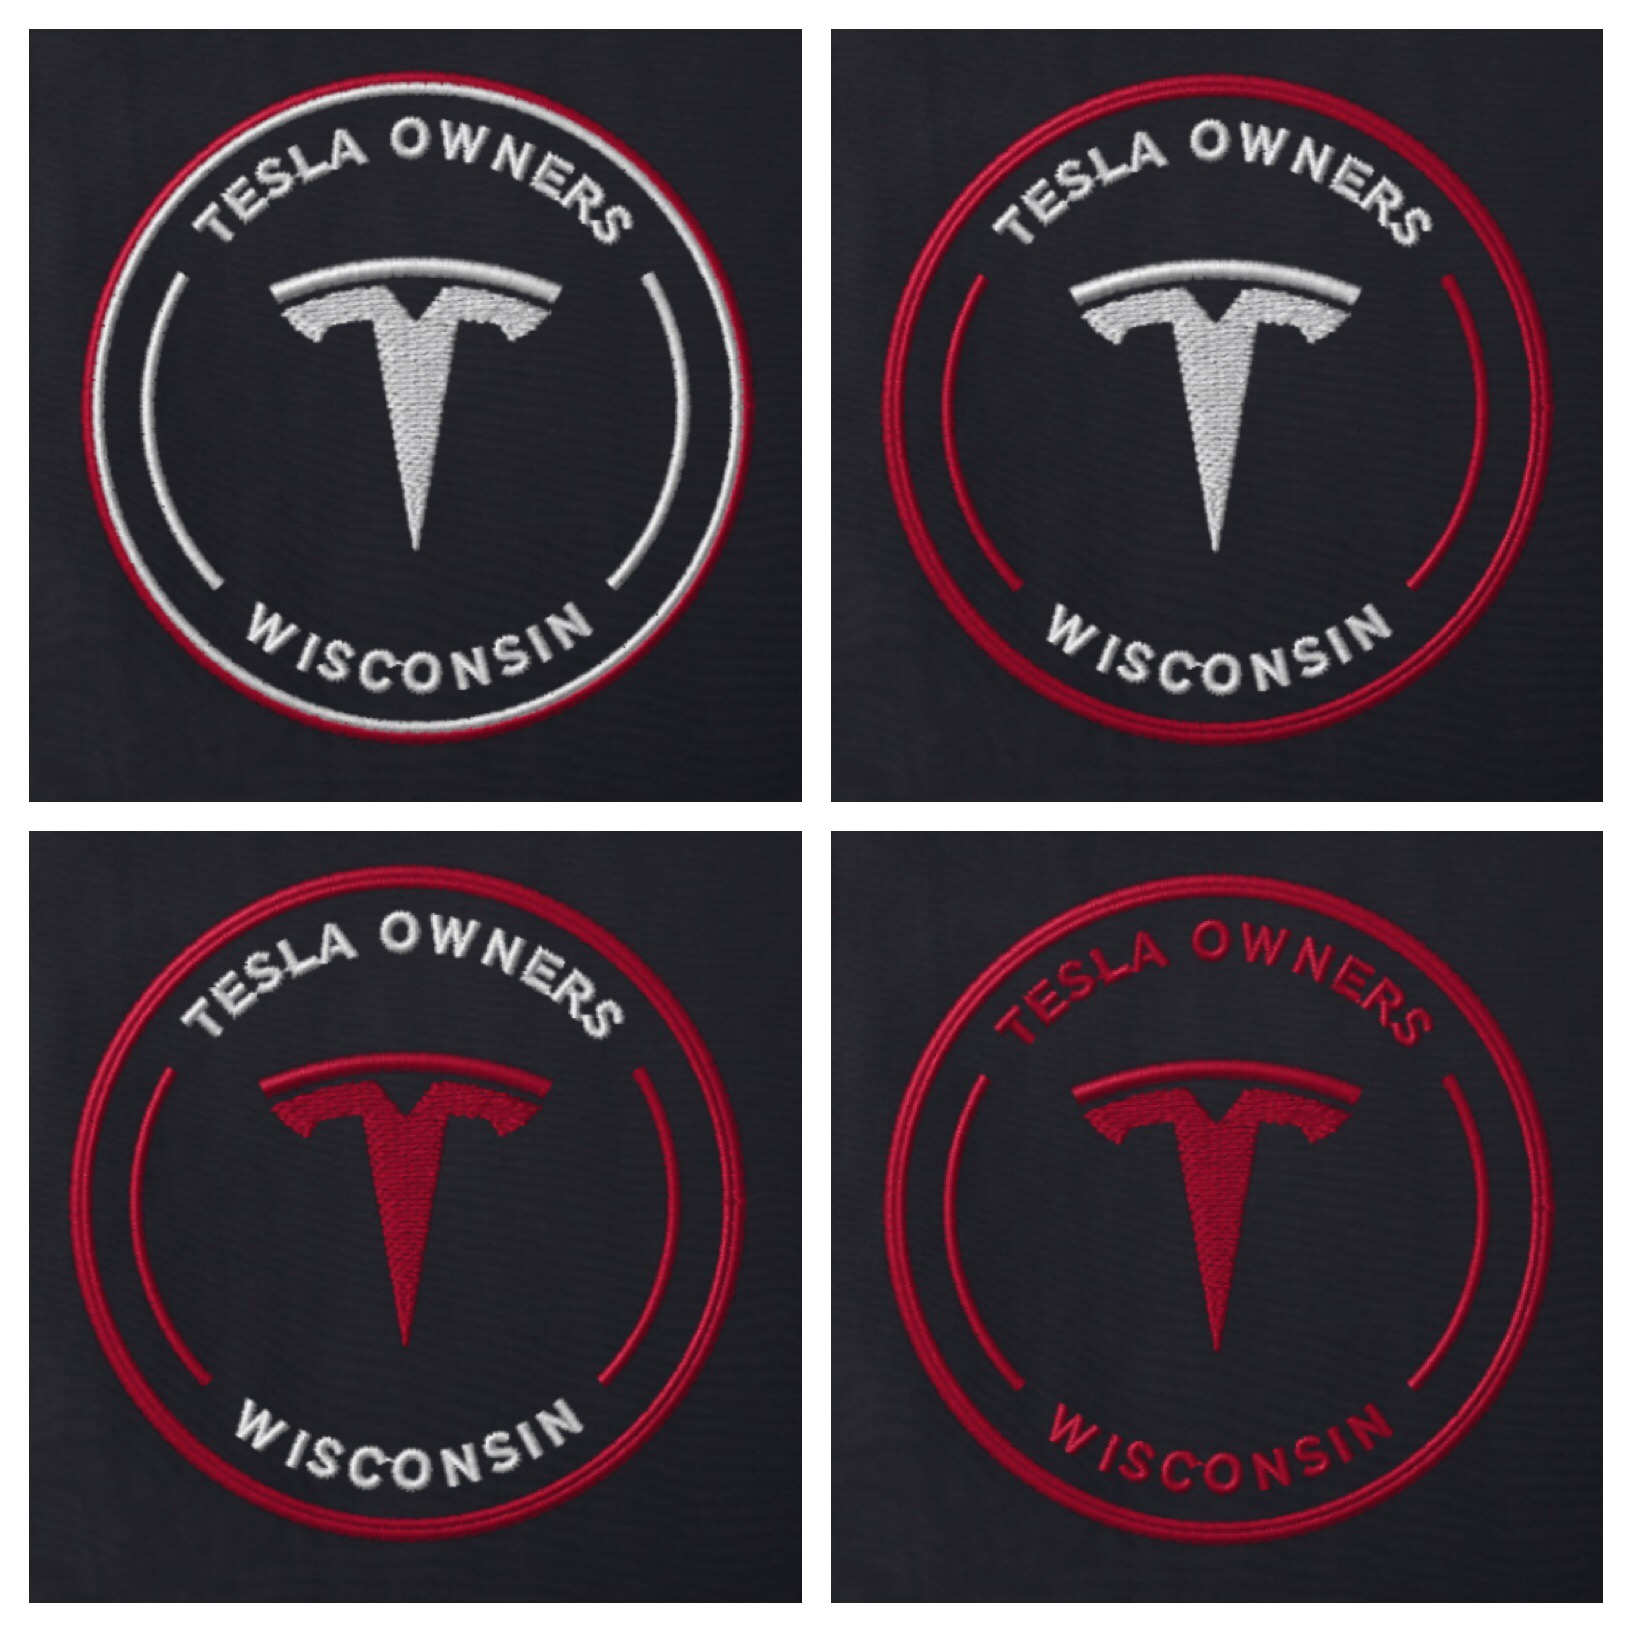 Click the Tesla owner's club Logo to be directed to Lands' End business site - Our logo utilizes four-needle construction, meaning you can select color options on your logo to your preference